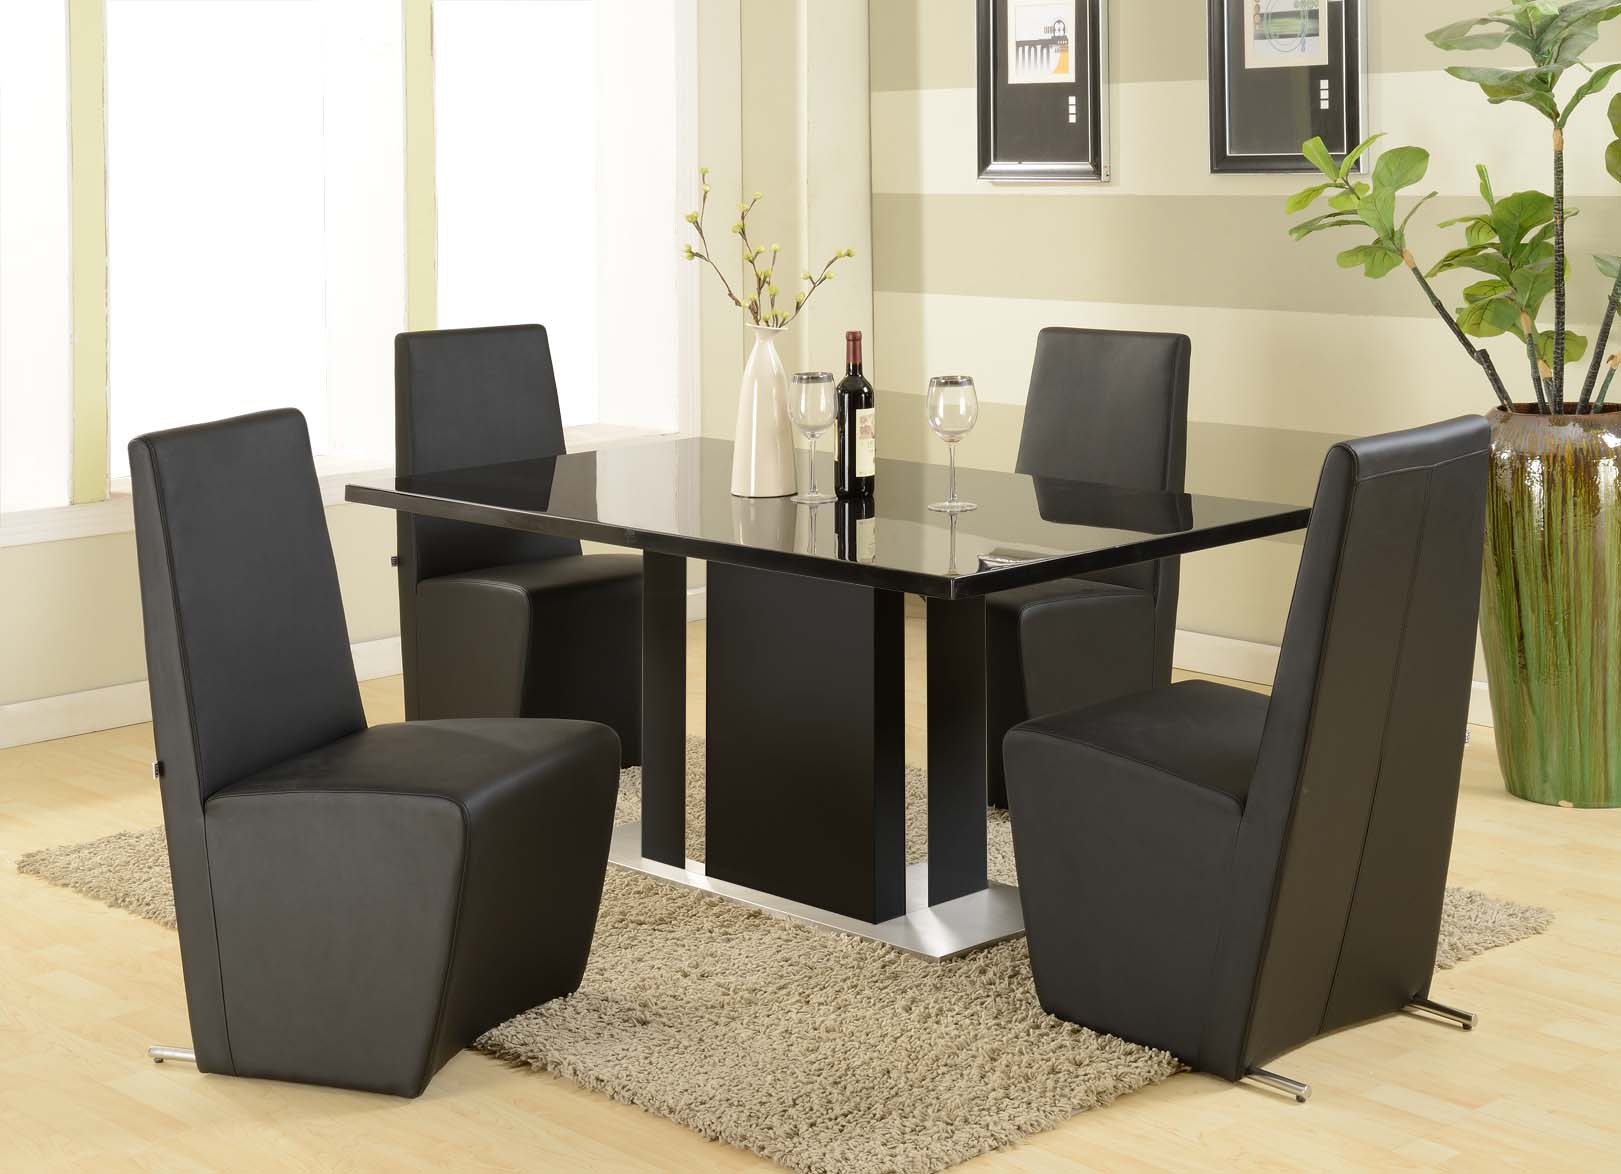 Impressive Dining Table and Chair Sets 1621 x 1174 · 155 kB · jpeg